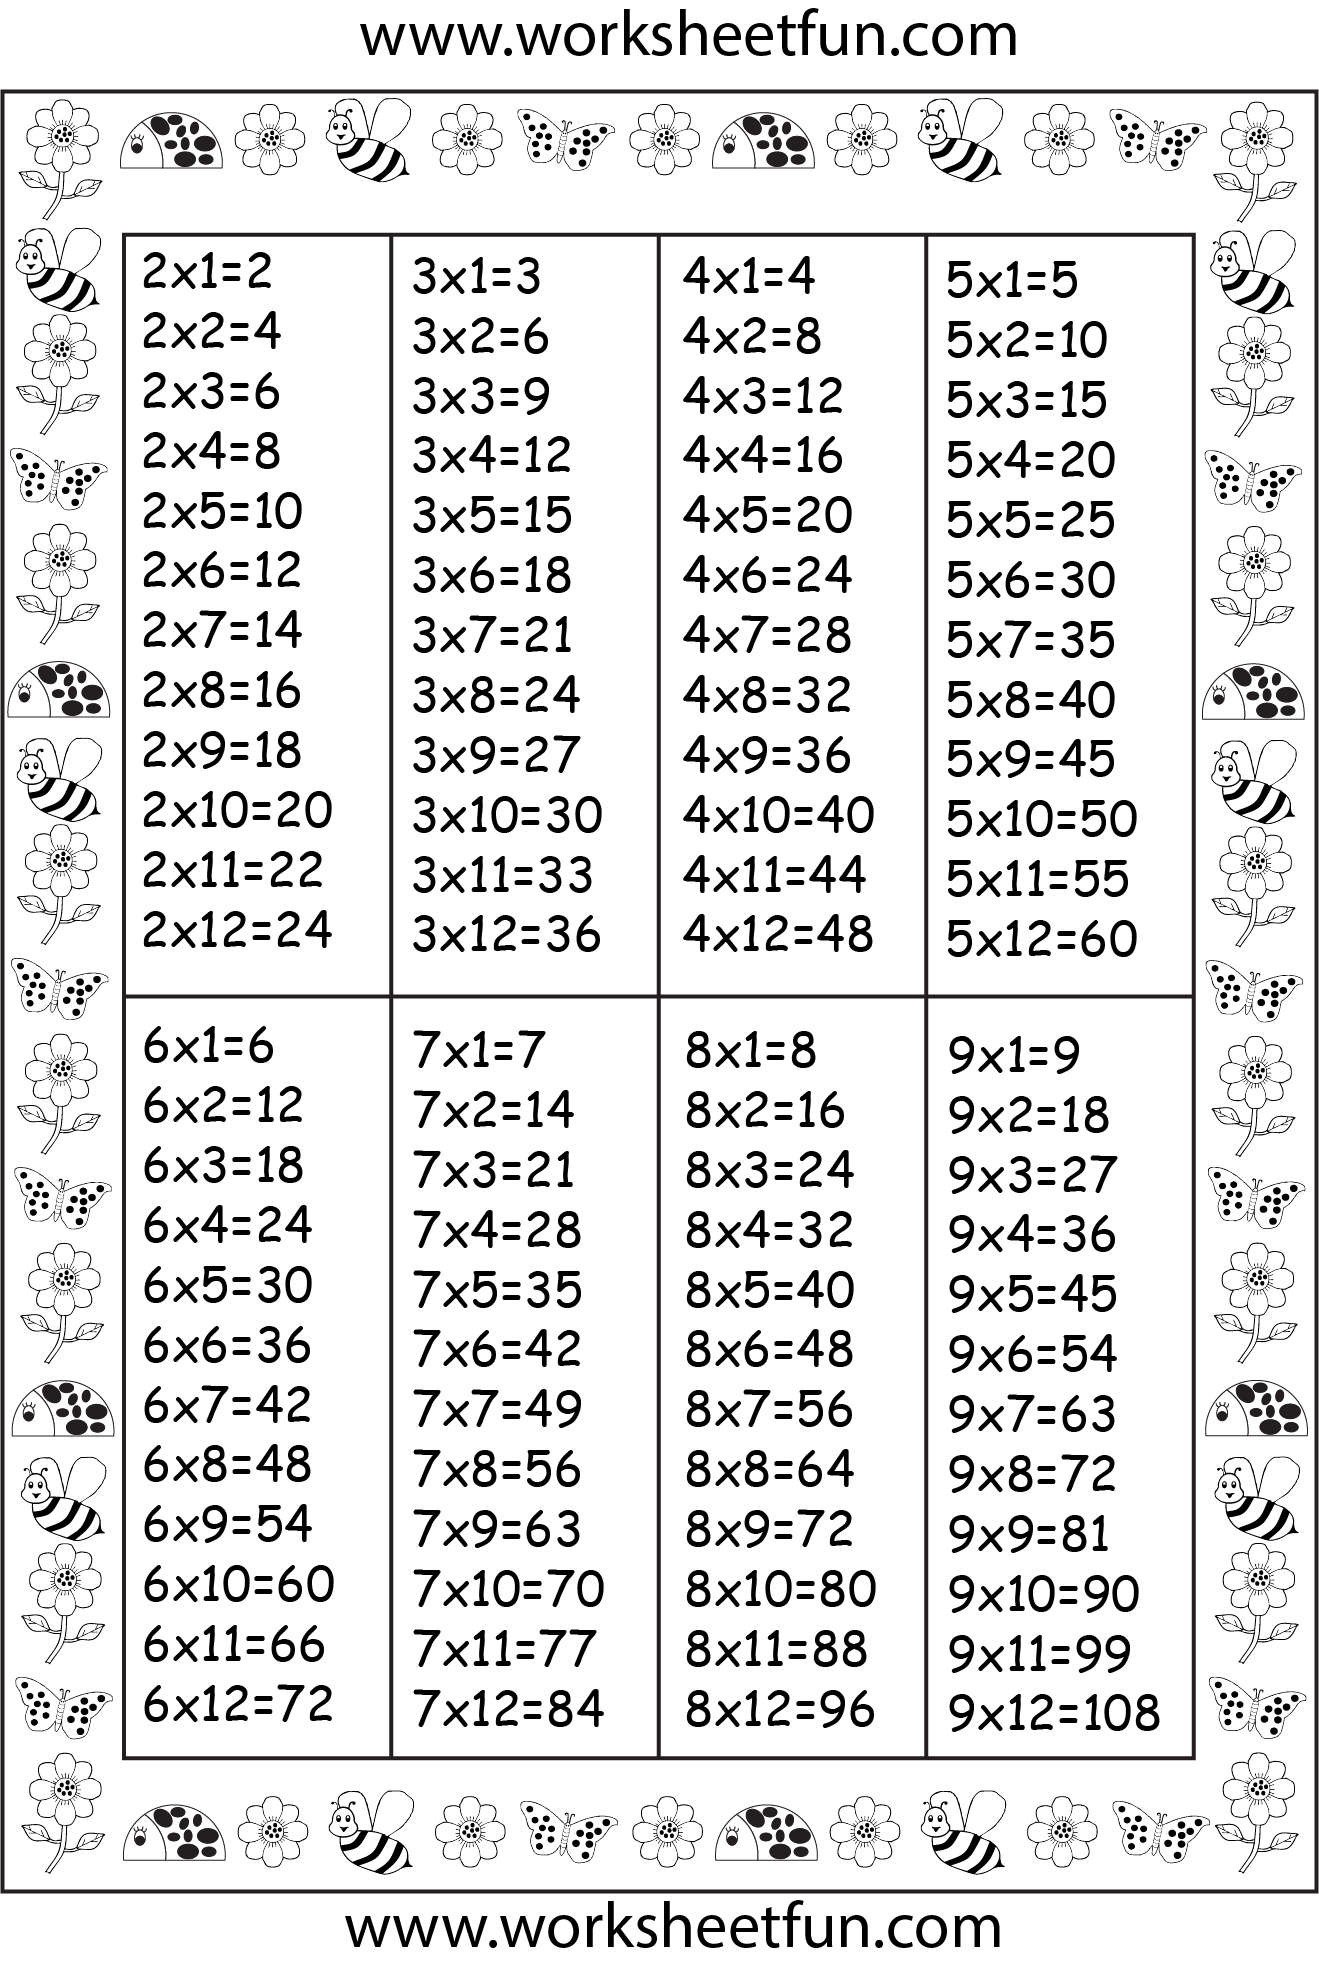 Times Table Chart | Times Table Chart, Homeschool Math